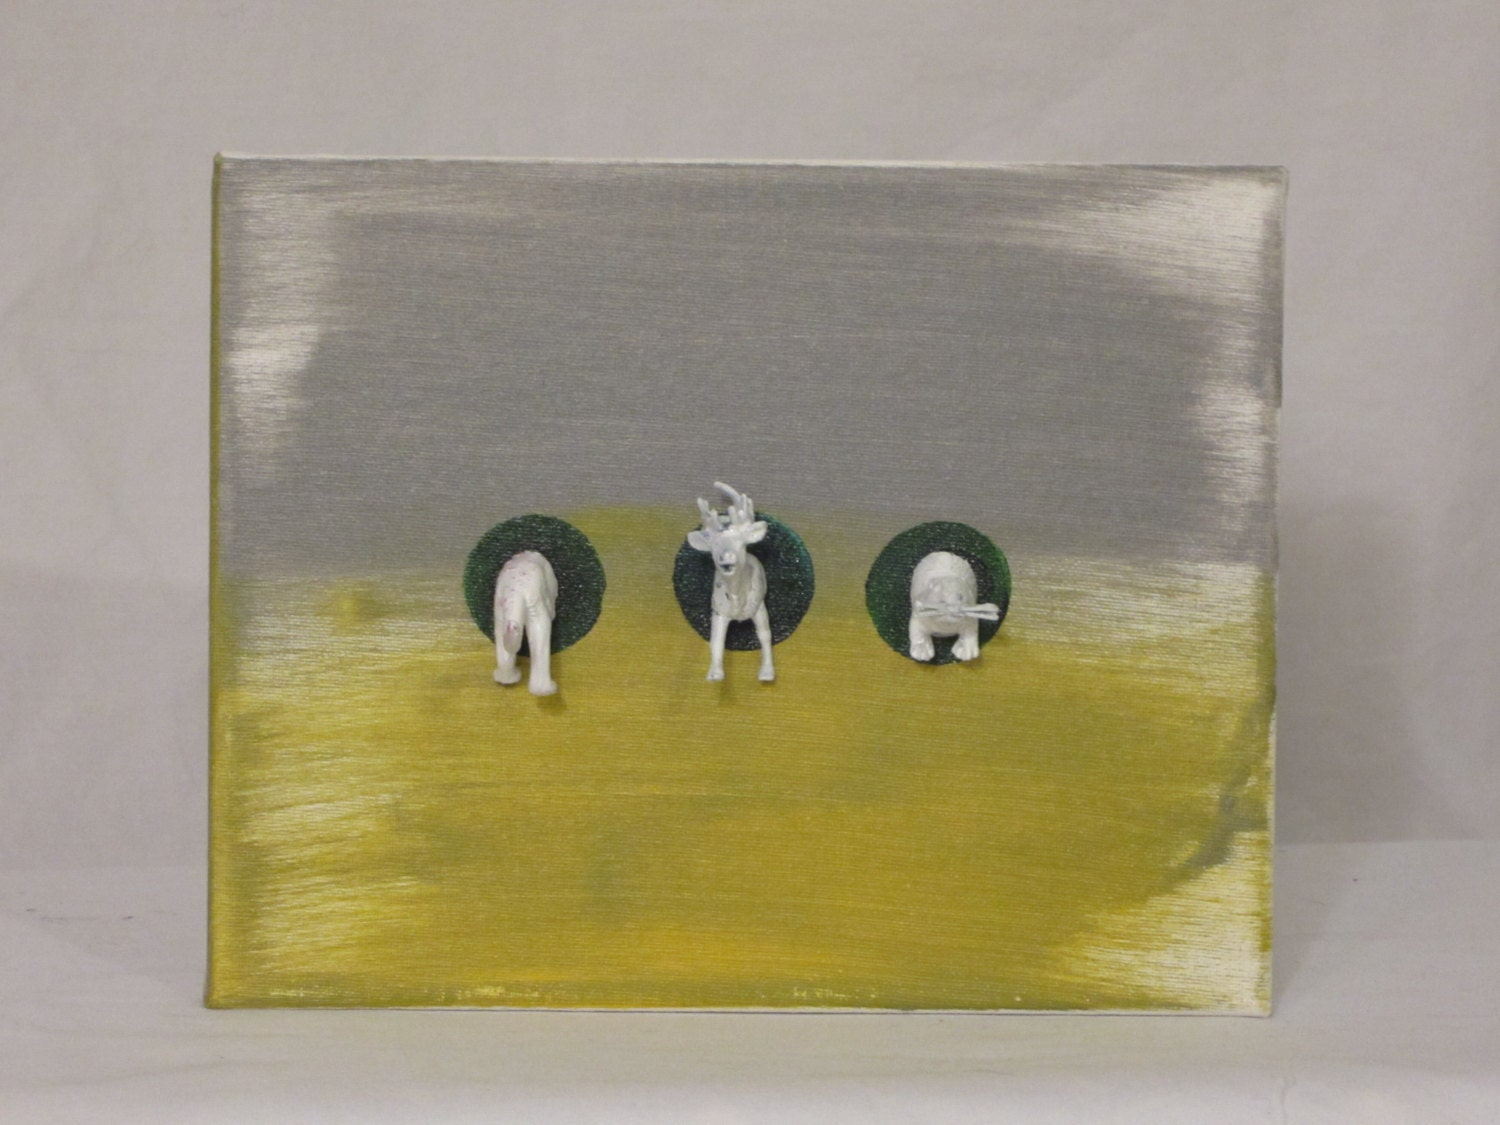 Animal Halves on 7x9 Canvas Wall Hanging Faux Taxidermy